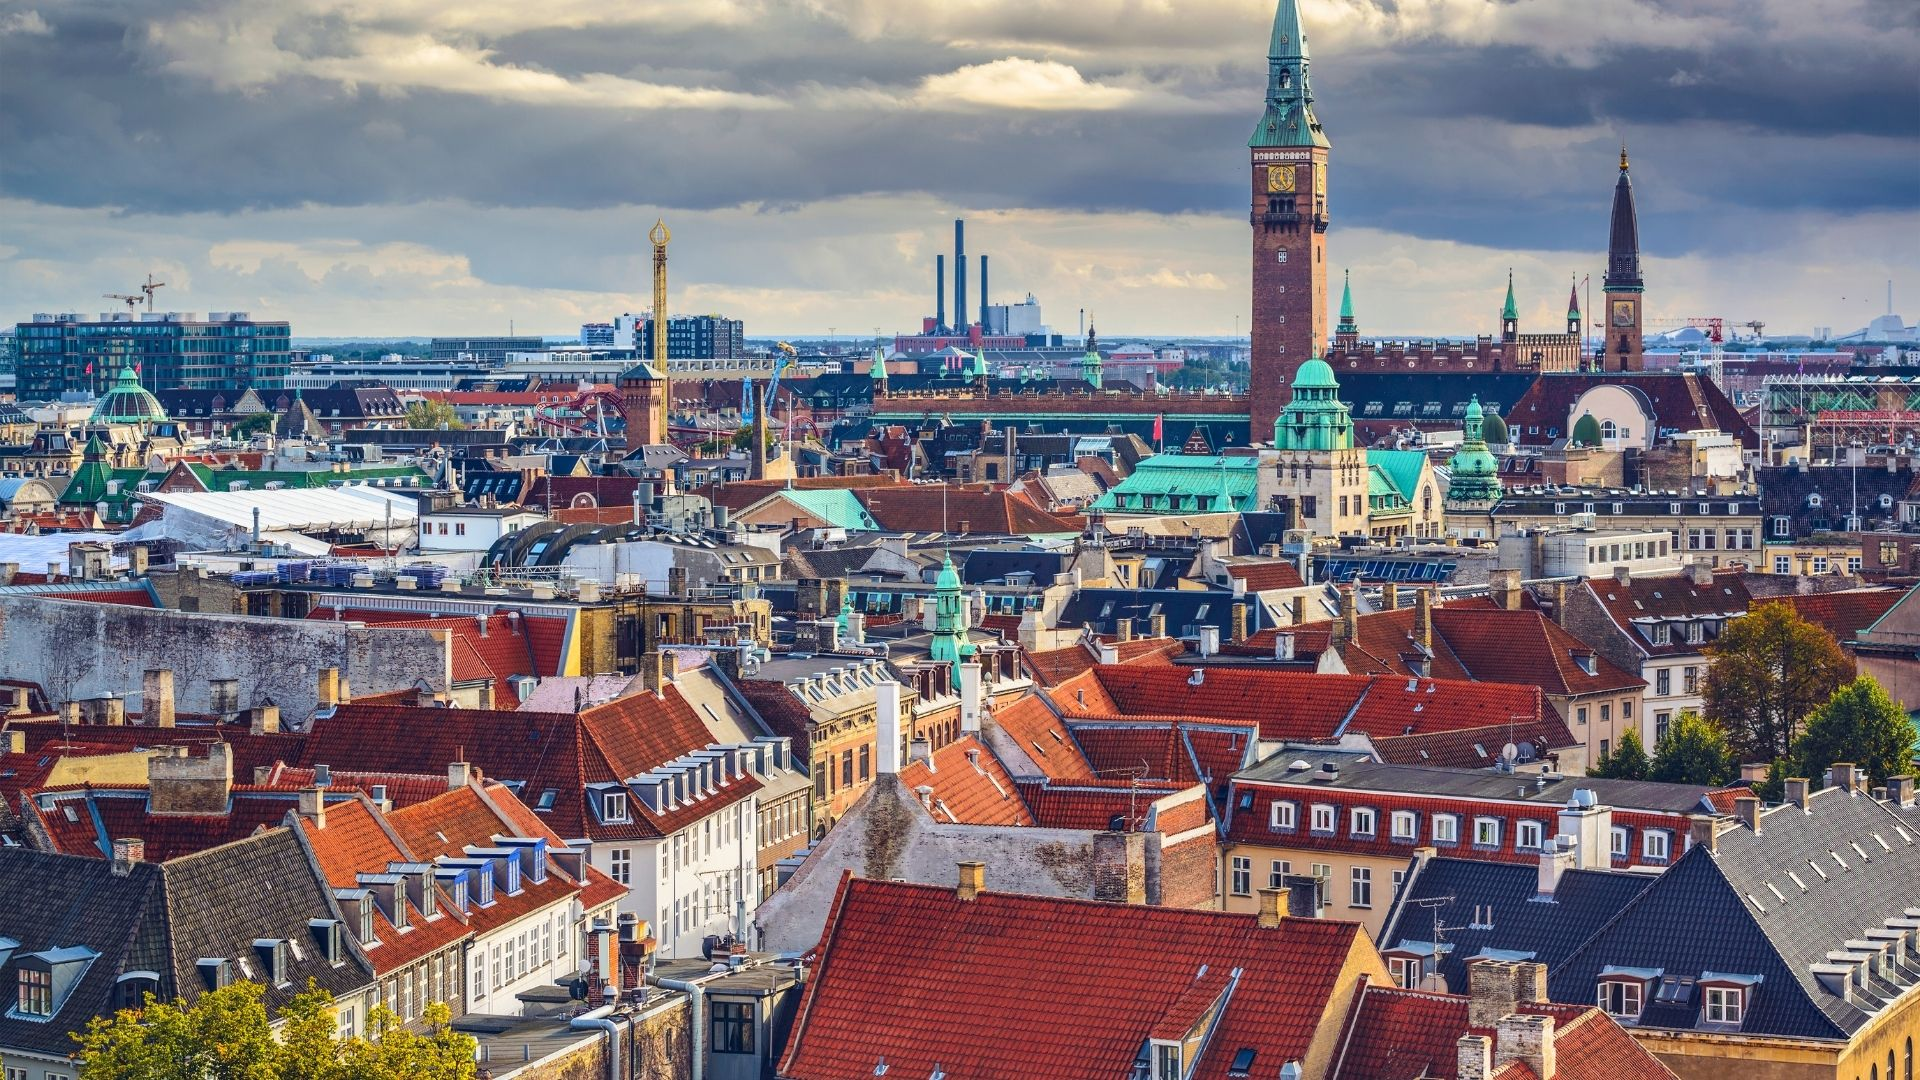 7 Insta-Worthy Places to Visit in Denmark for Tourists This Year